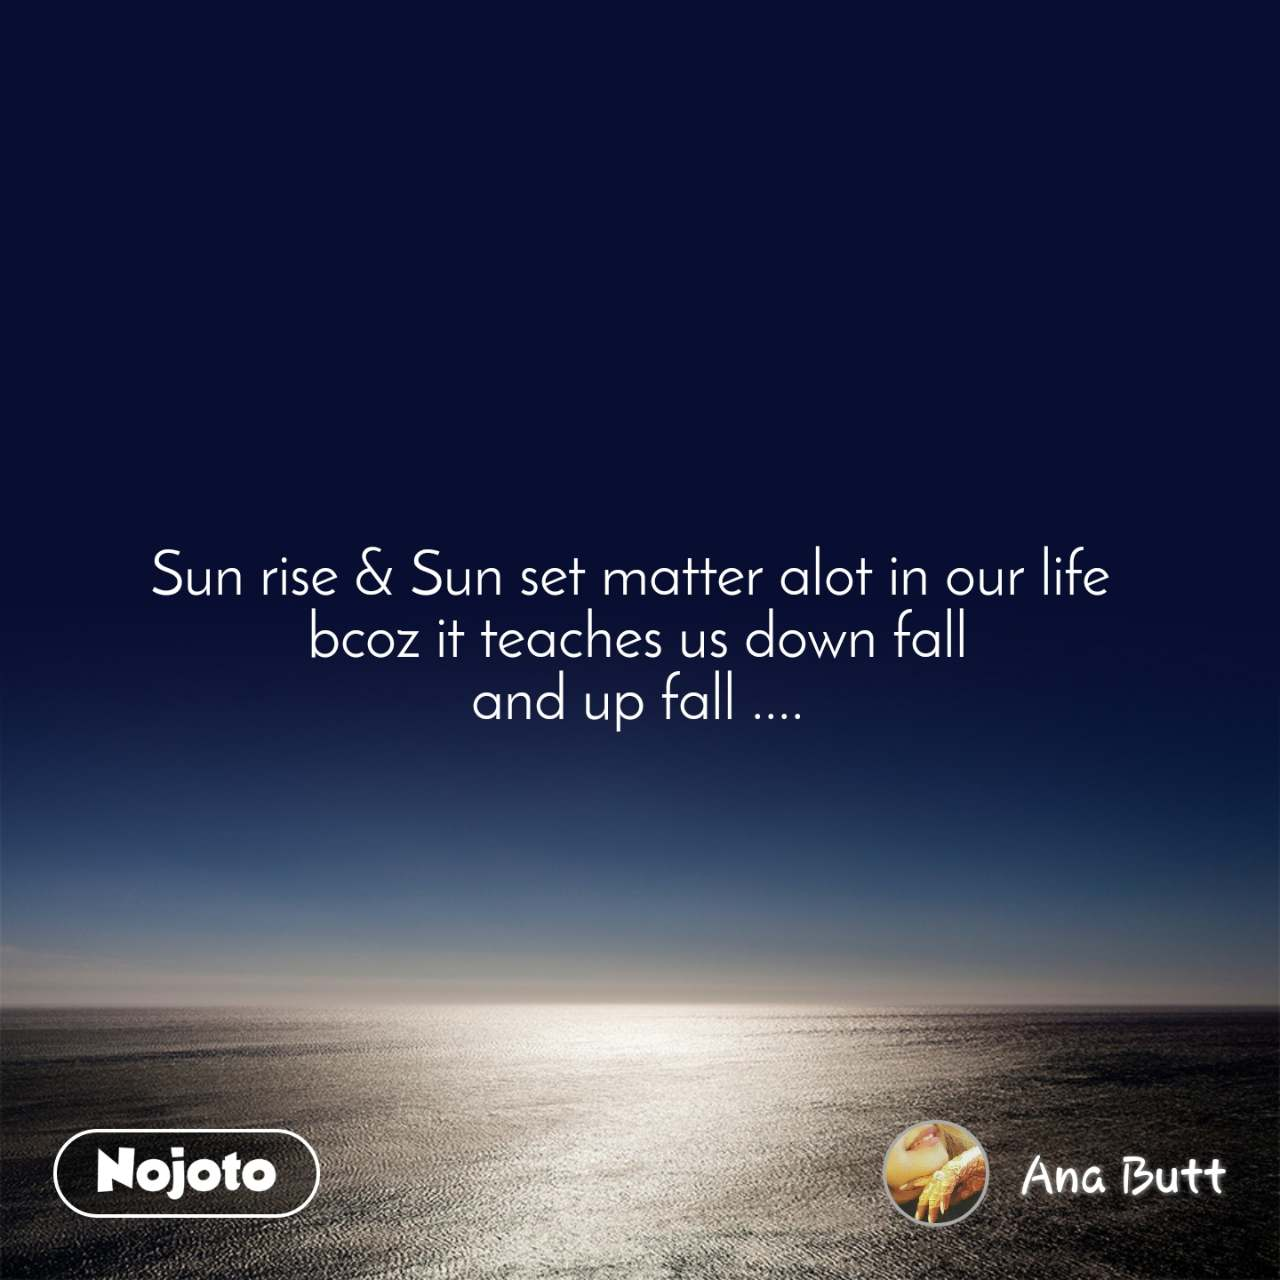 Sun rise & Sun set matter alot in our life  bcoz it teaches us down fall and up fall ....